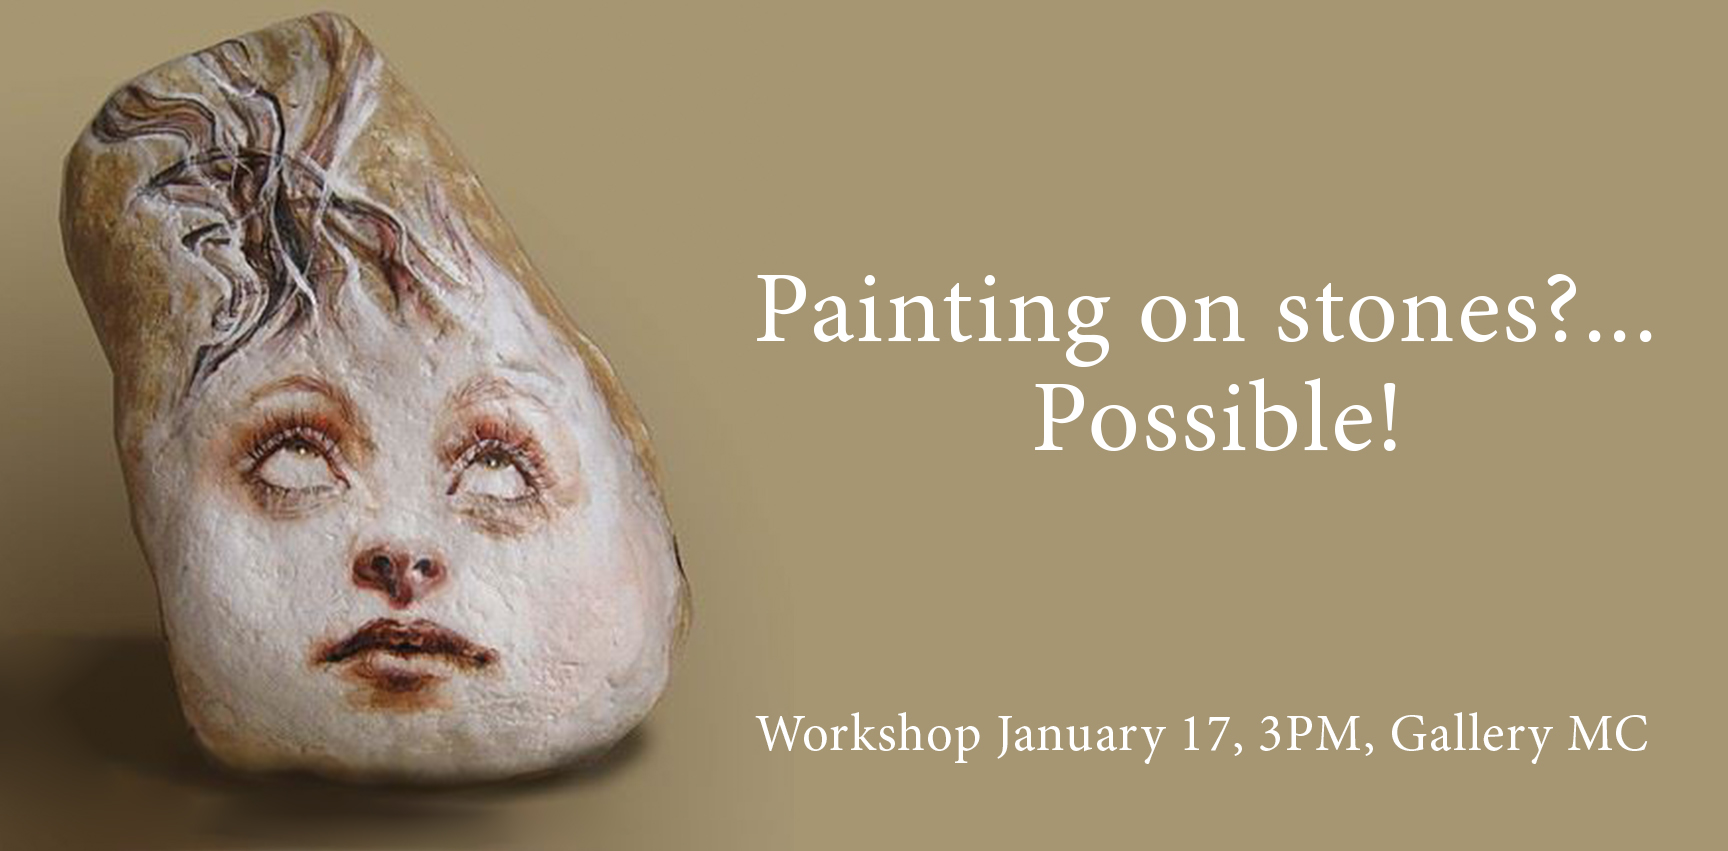 workshop-stonepainting-shirleysiegal-reartiste111.jpg